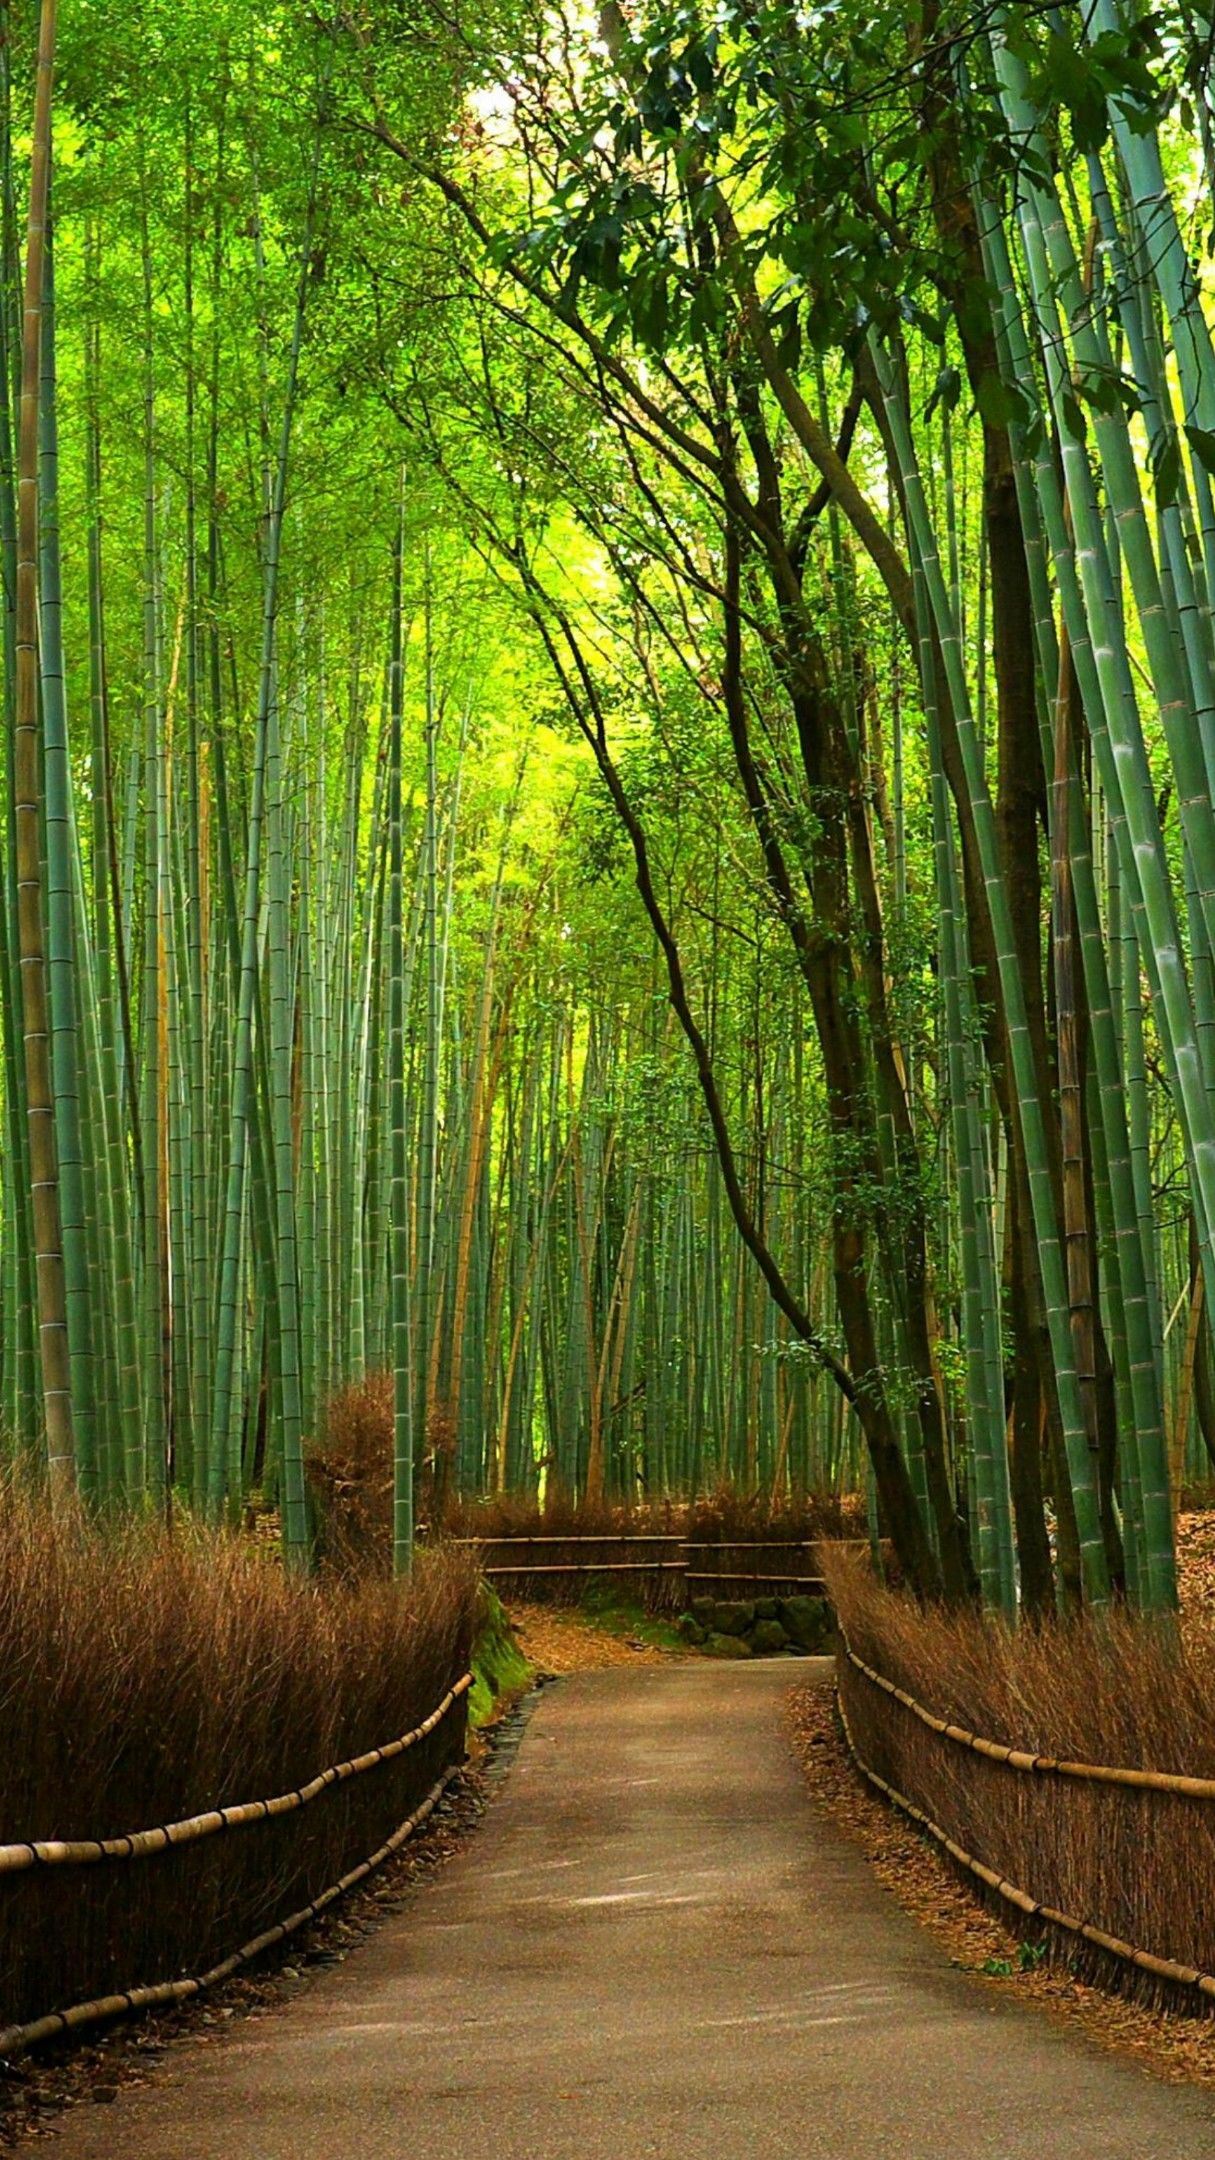 Hutan Bambu 4K UltraHD Wallpaper - backiee - Free Ultra HD wallpaper platform